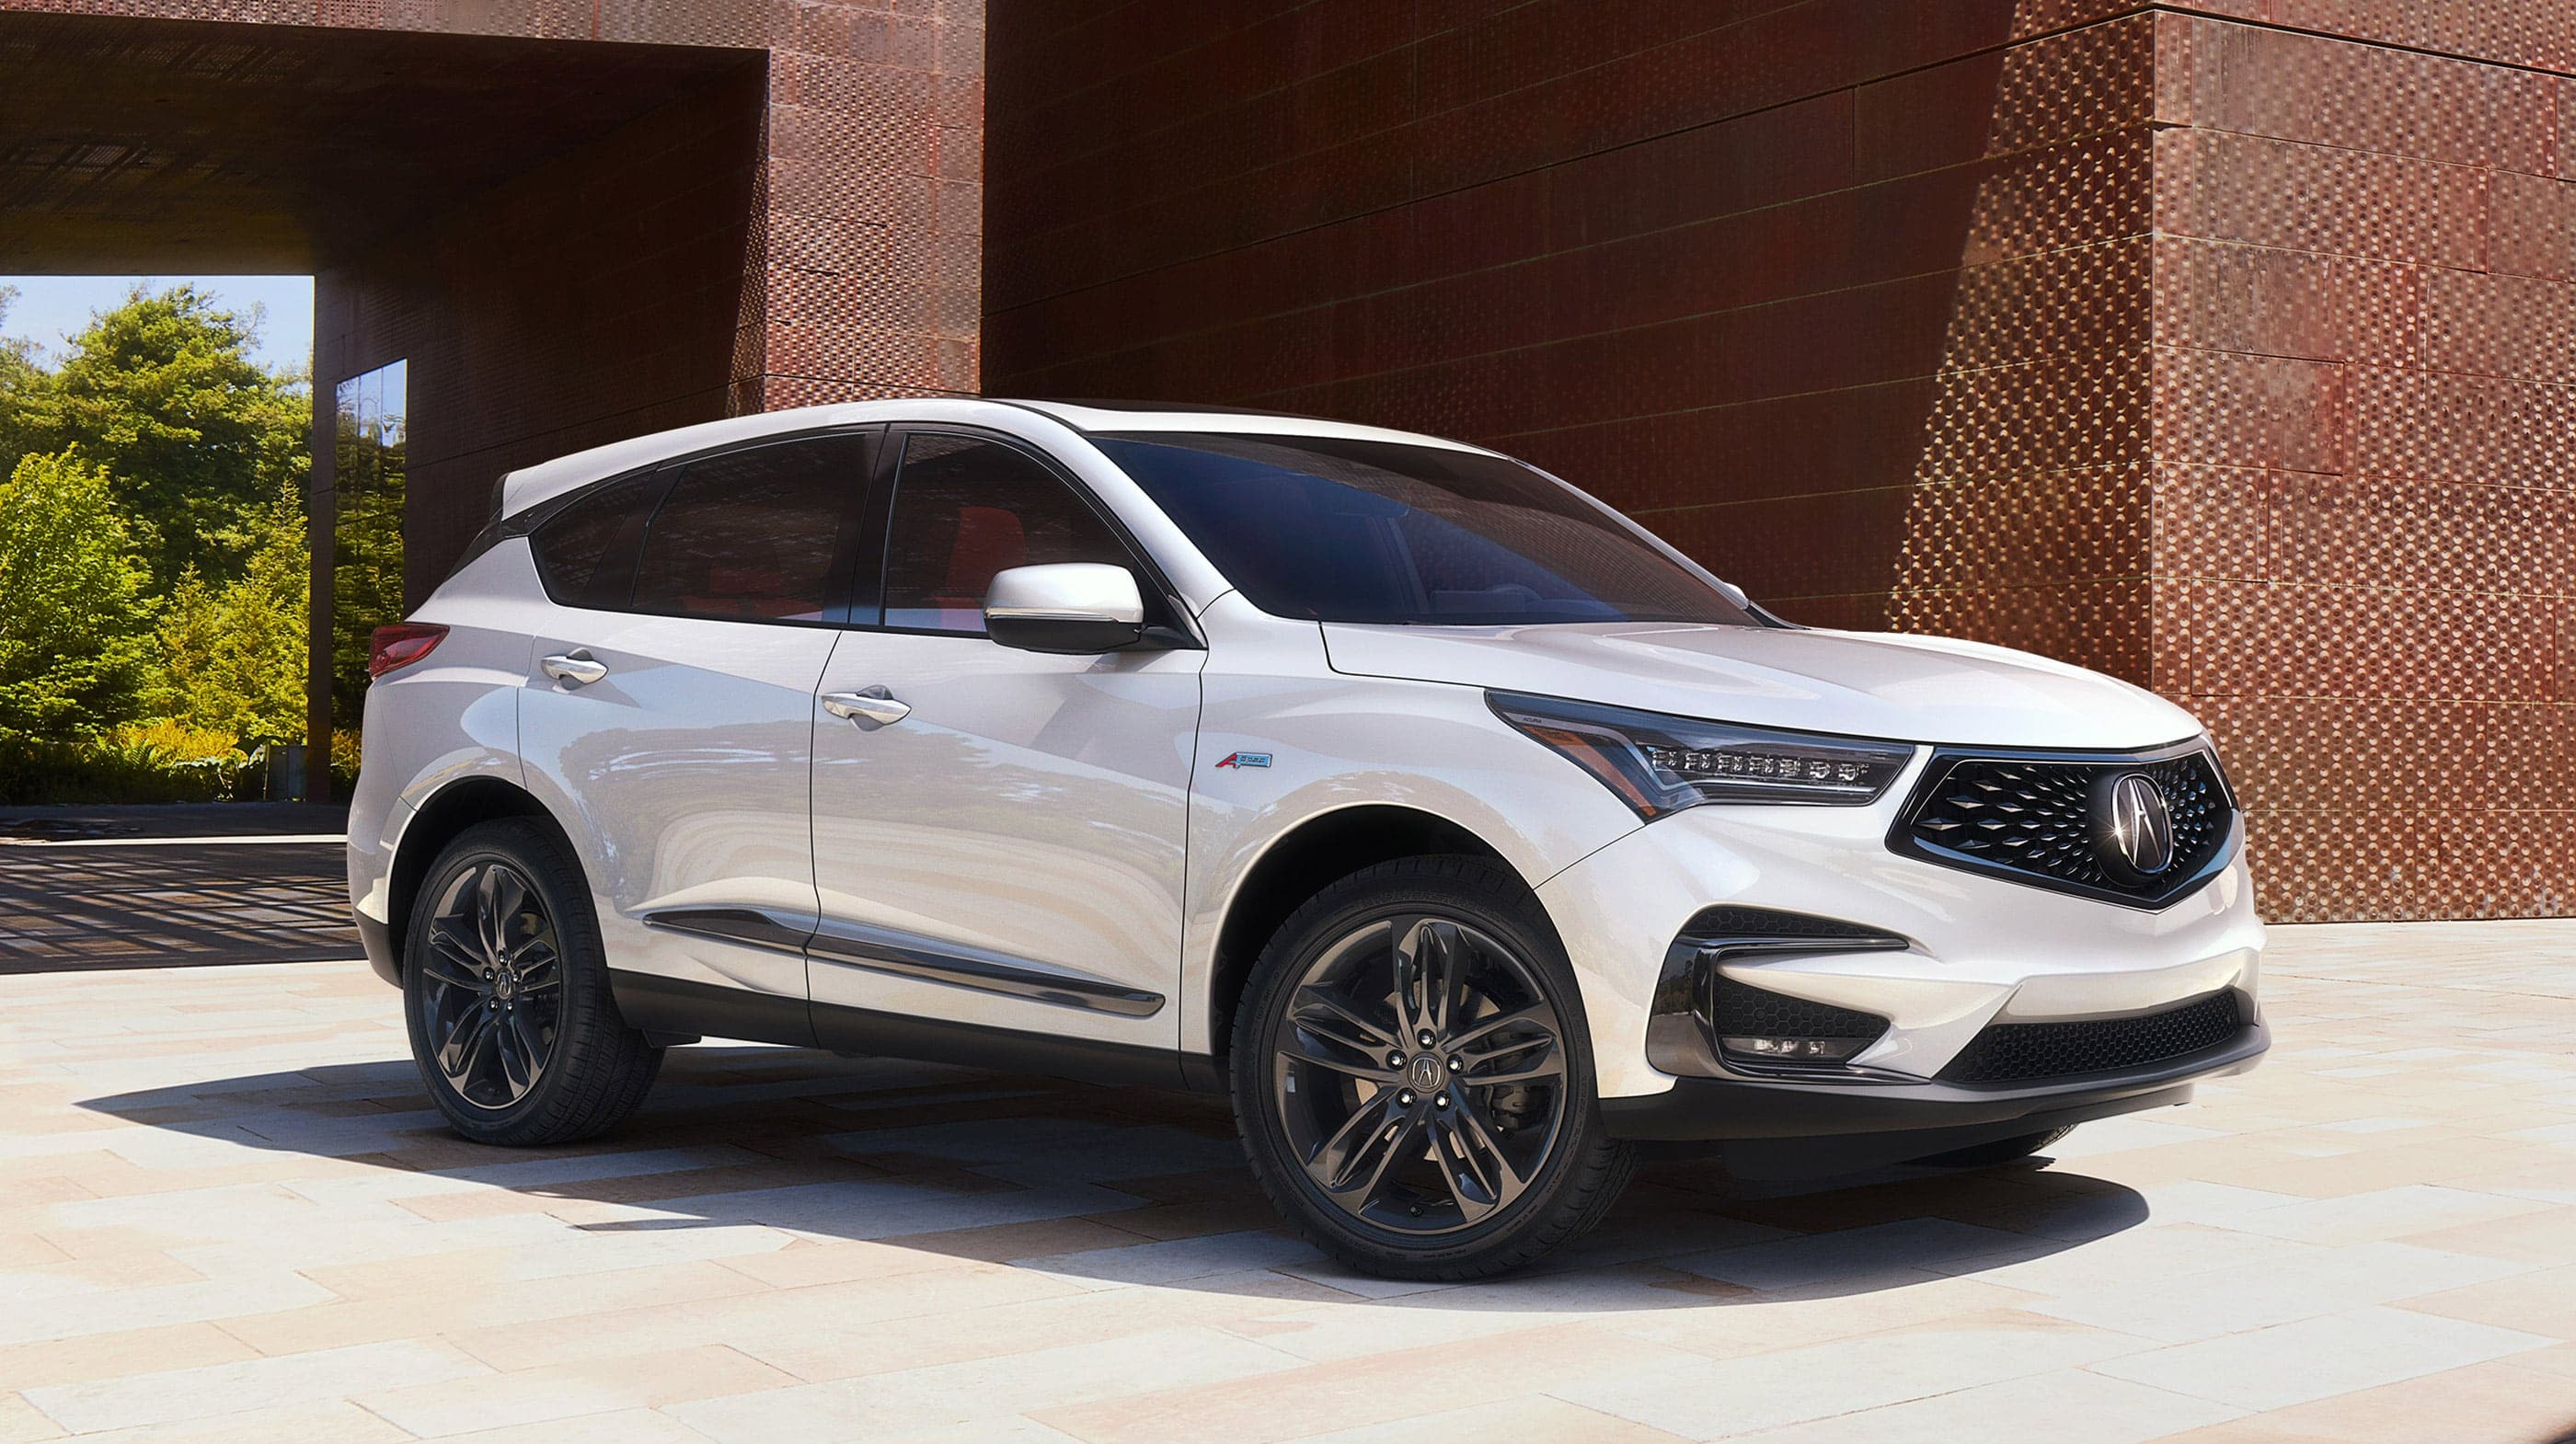 2020 Acura RDX Leasing near Arlington, VA